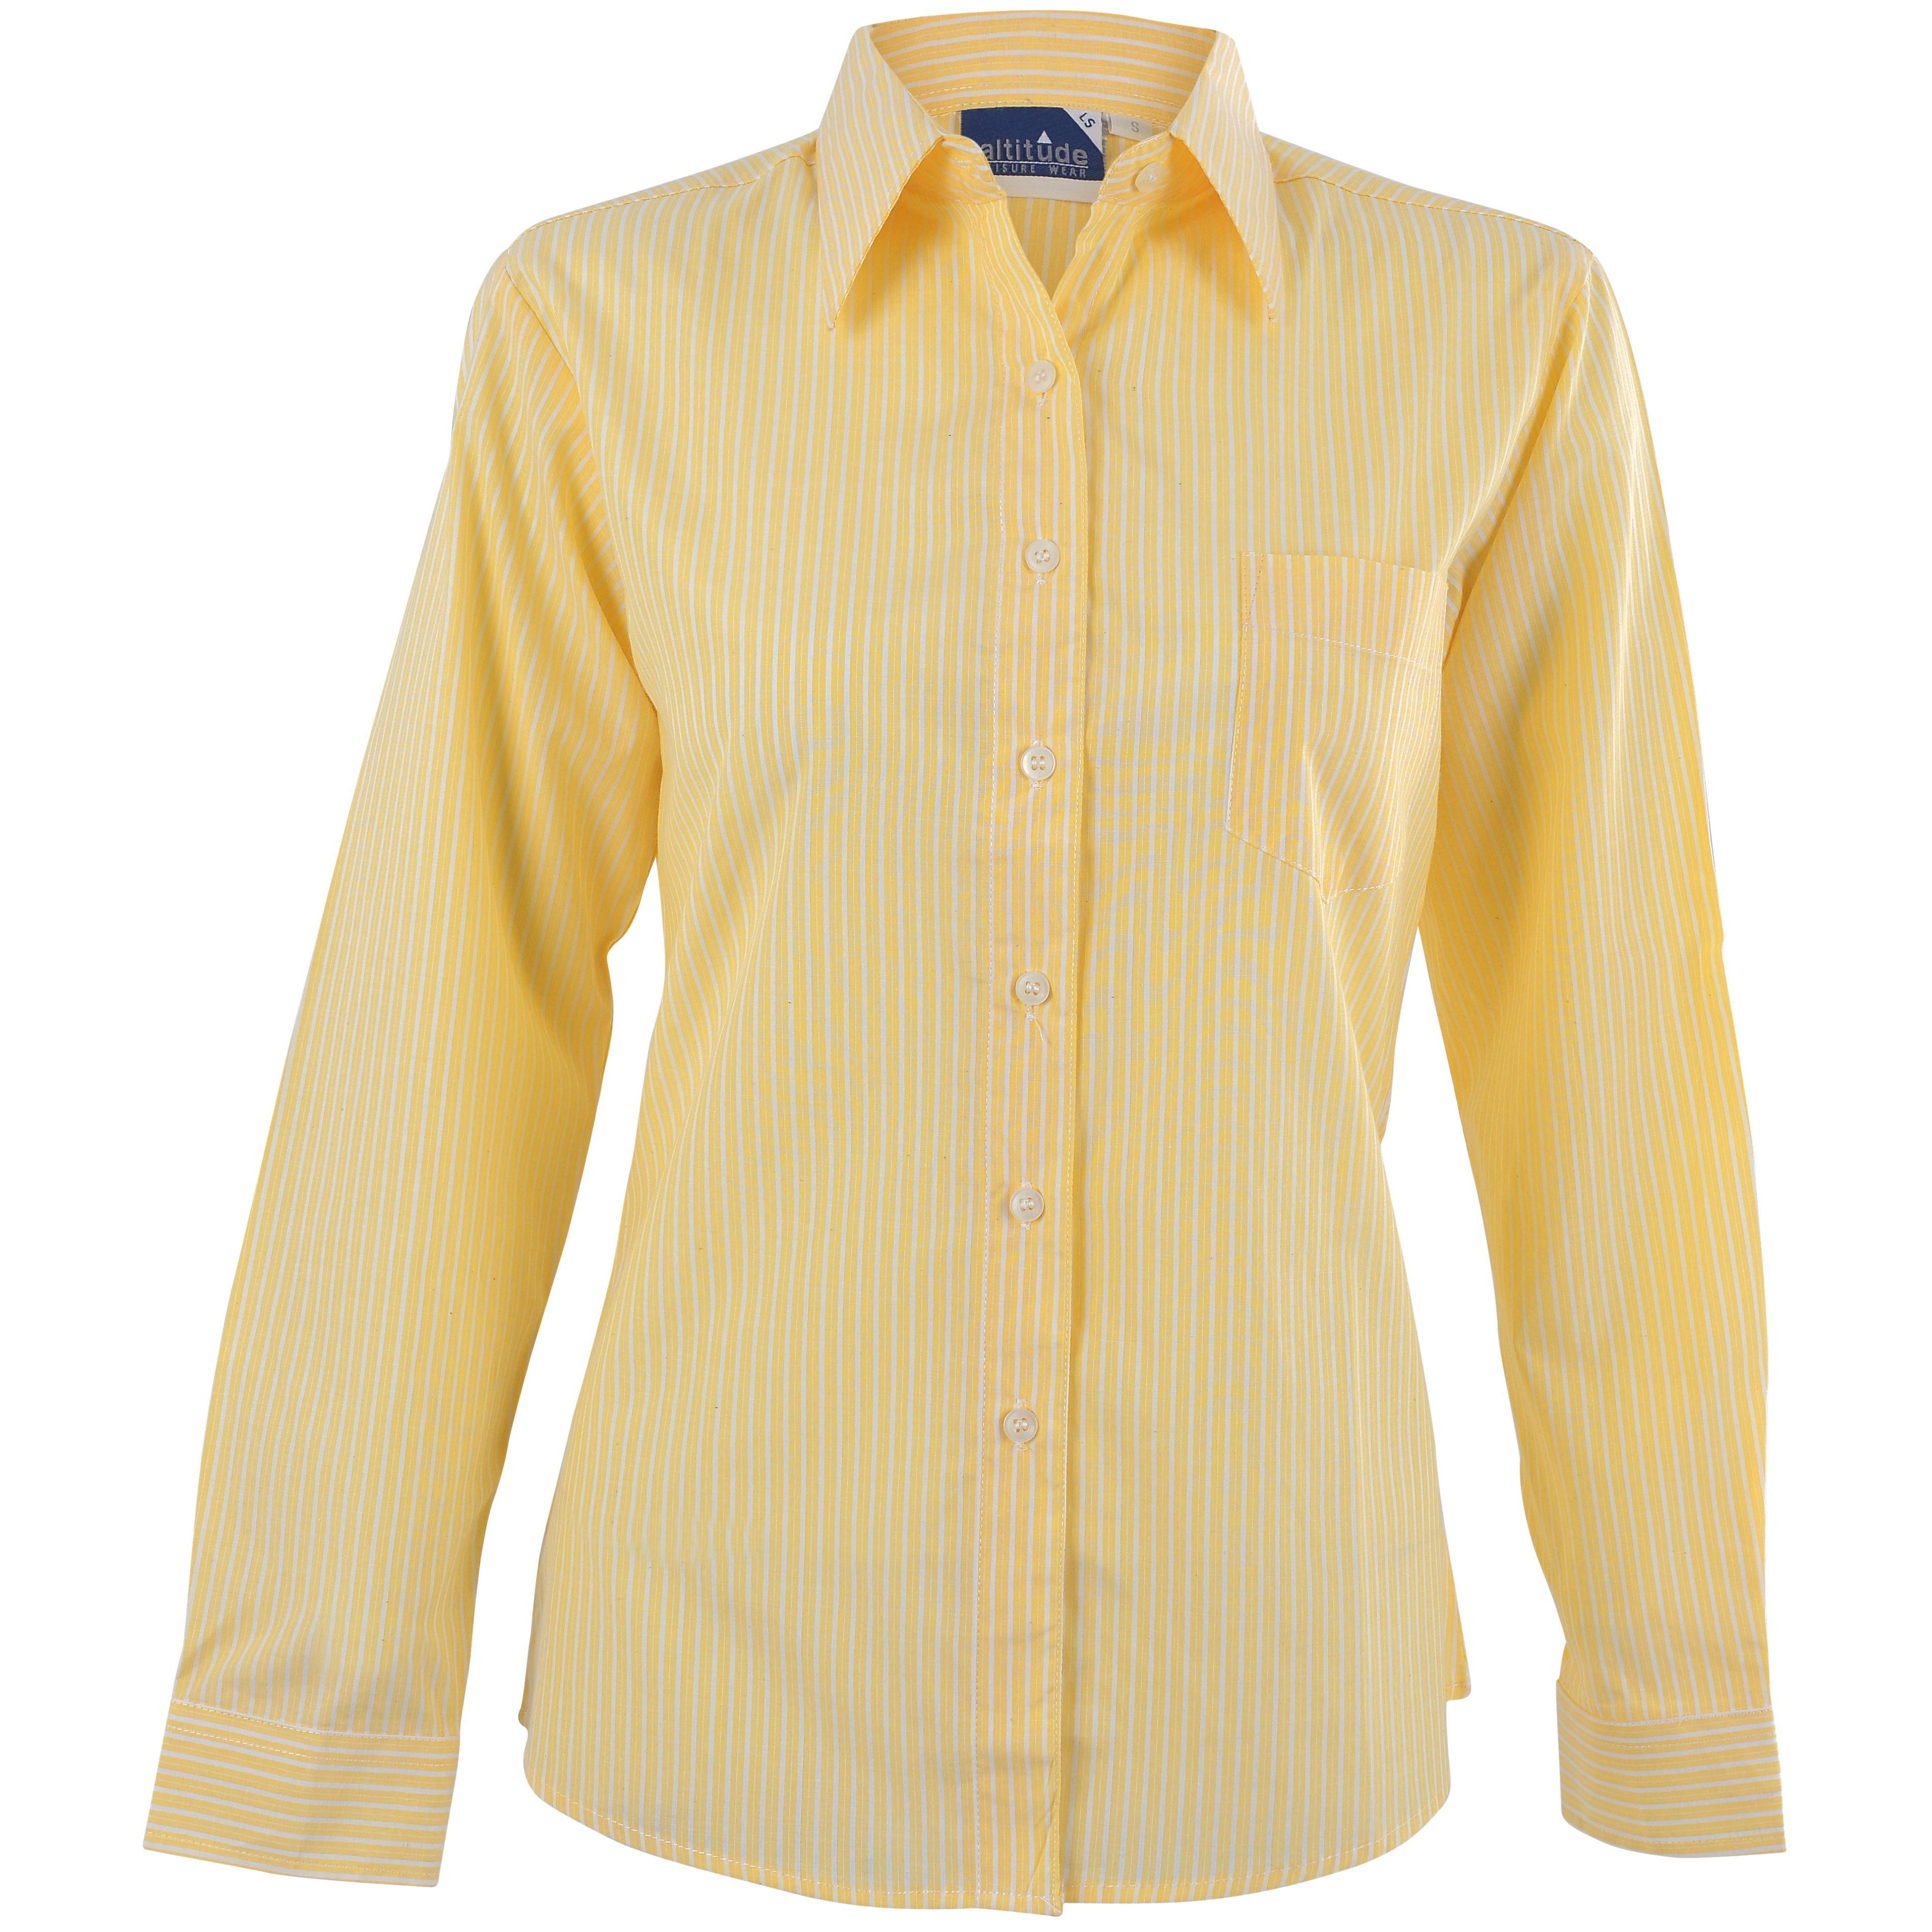 Ladies Long Sleeve Drew Shirt - Yellow Only